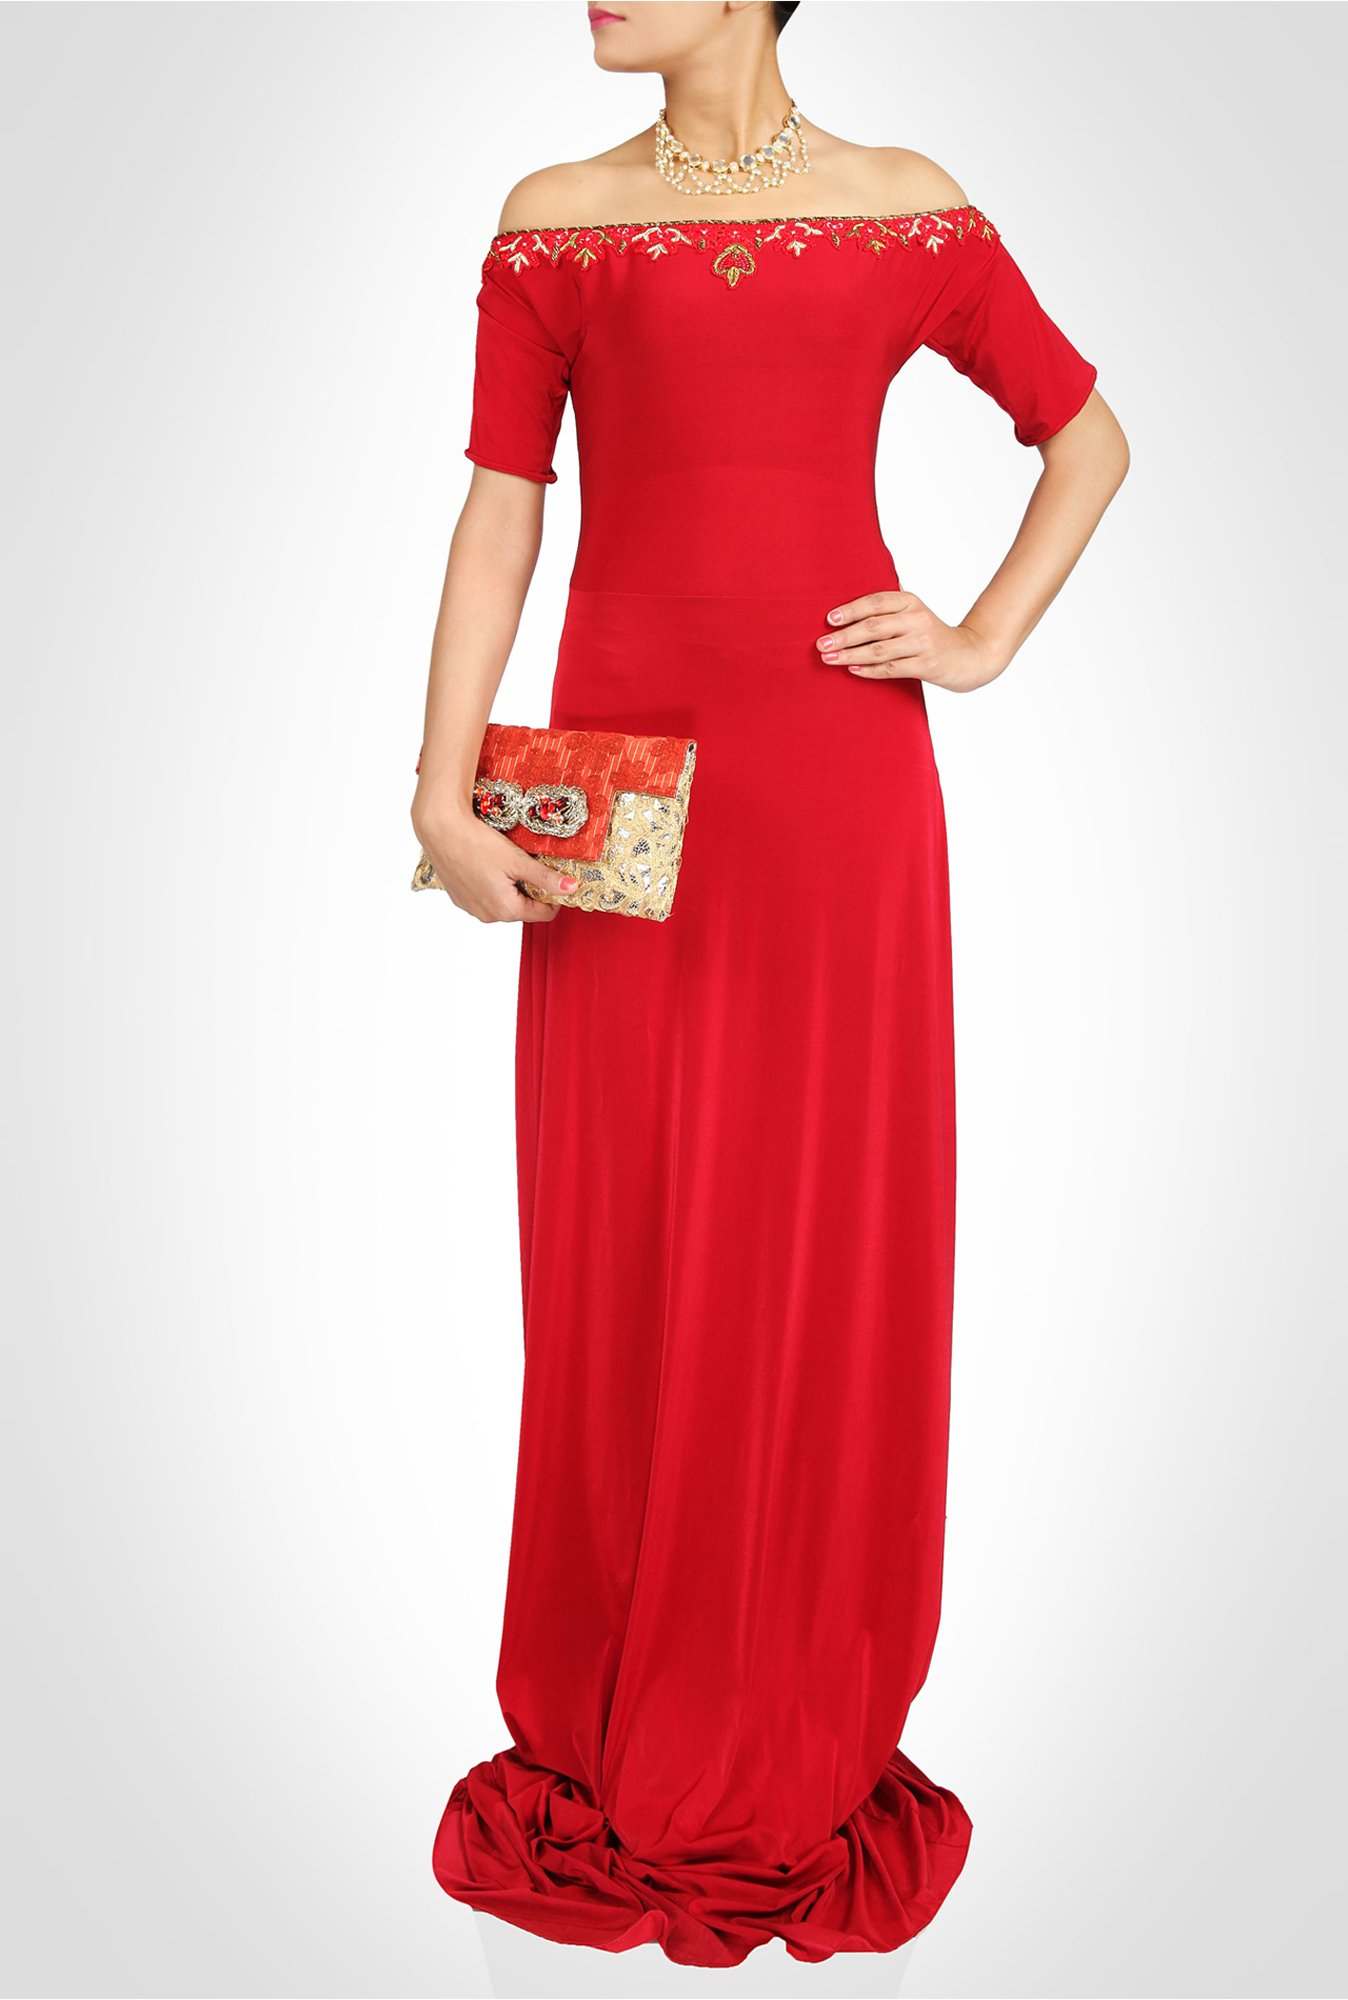 Saumya Gupta Designer Wear Red Off Shoulder Gown by Kimaya